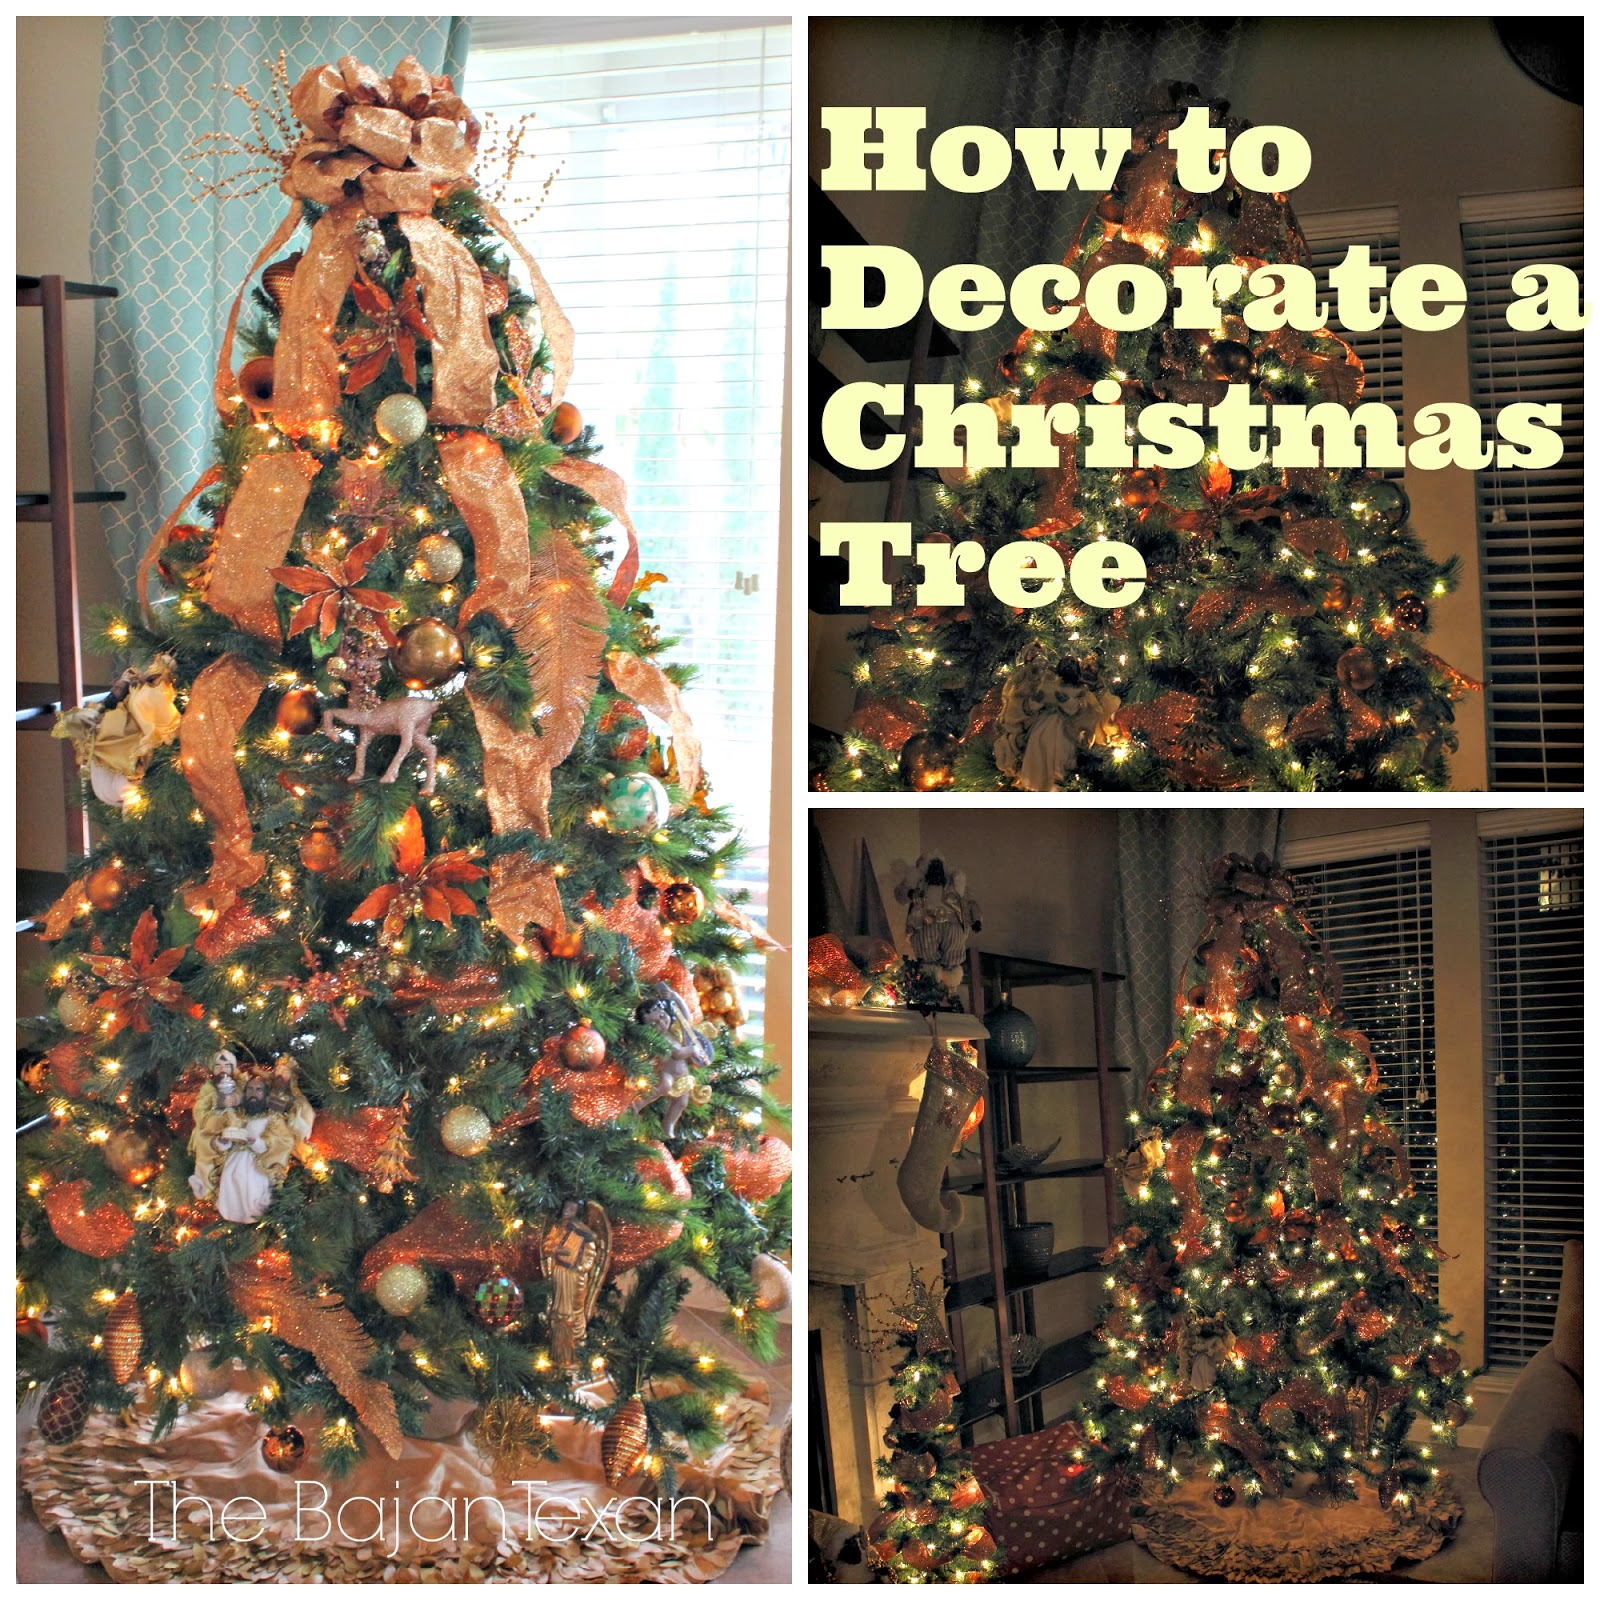 Decorate Christmas Tree For Easter : How to decorate a christmas tree holiday series the